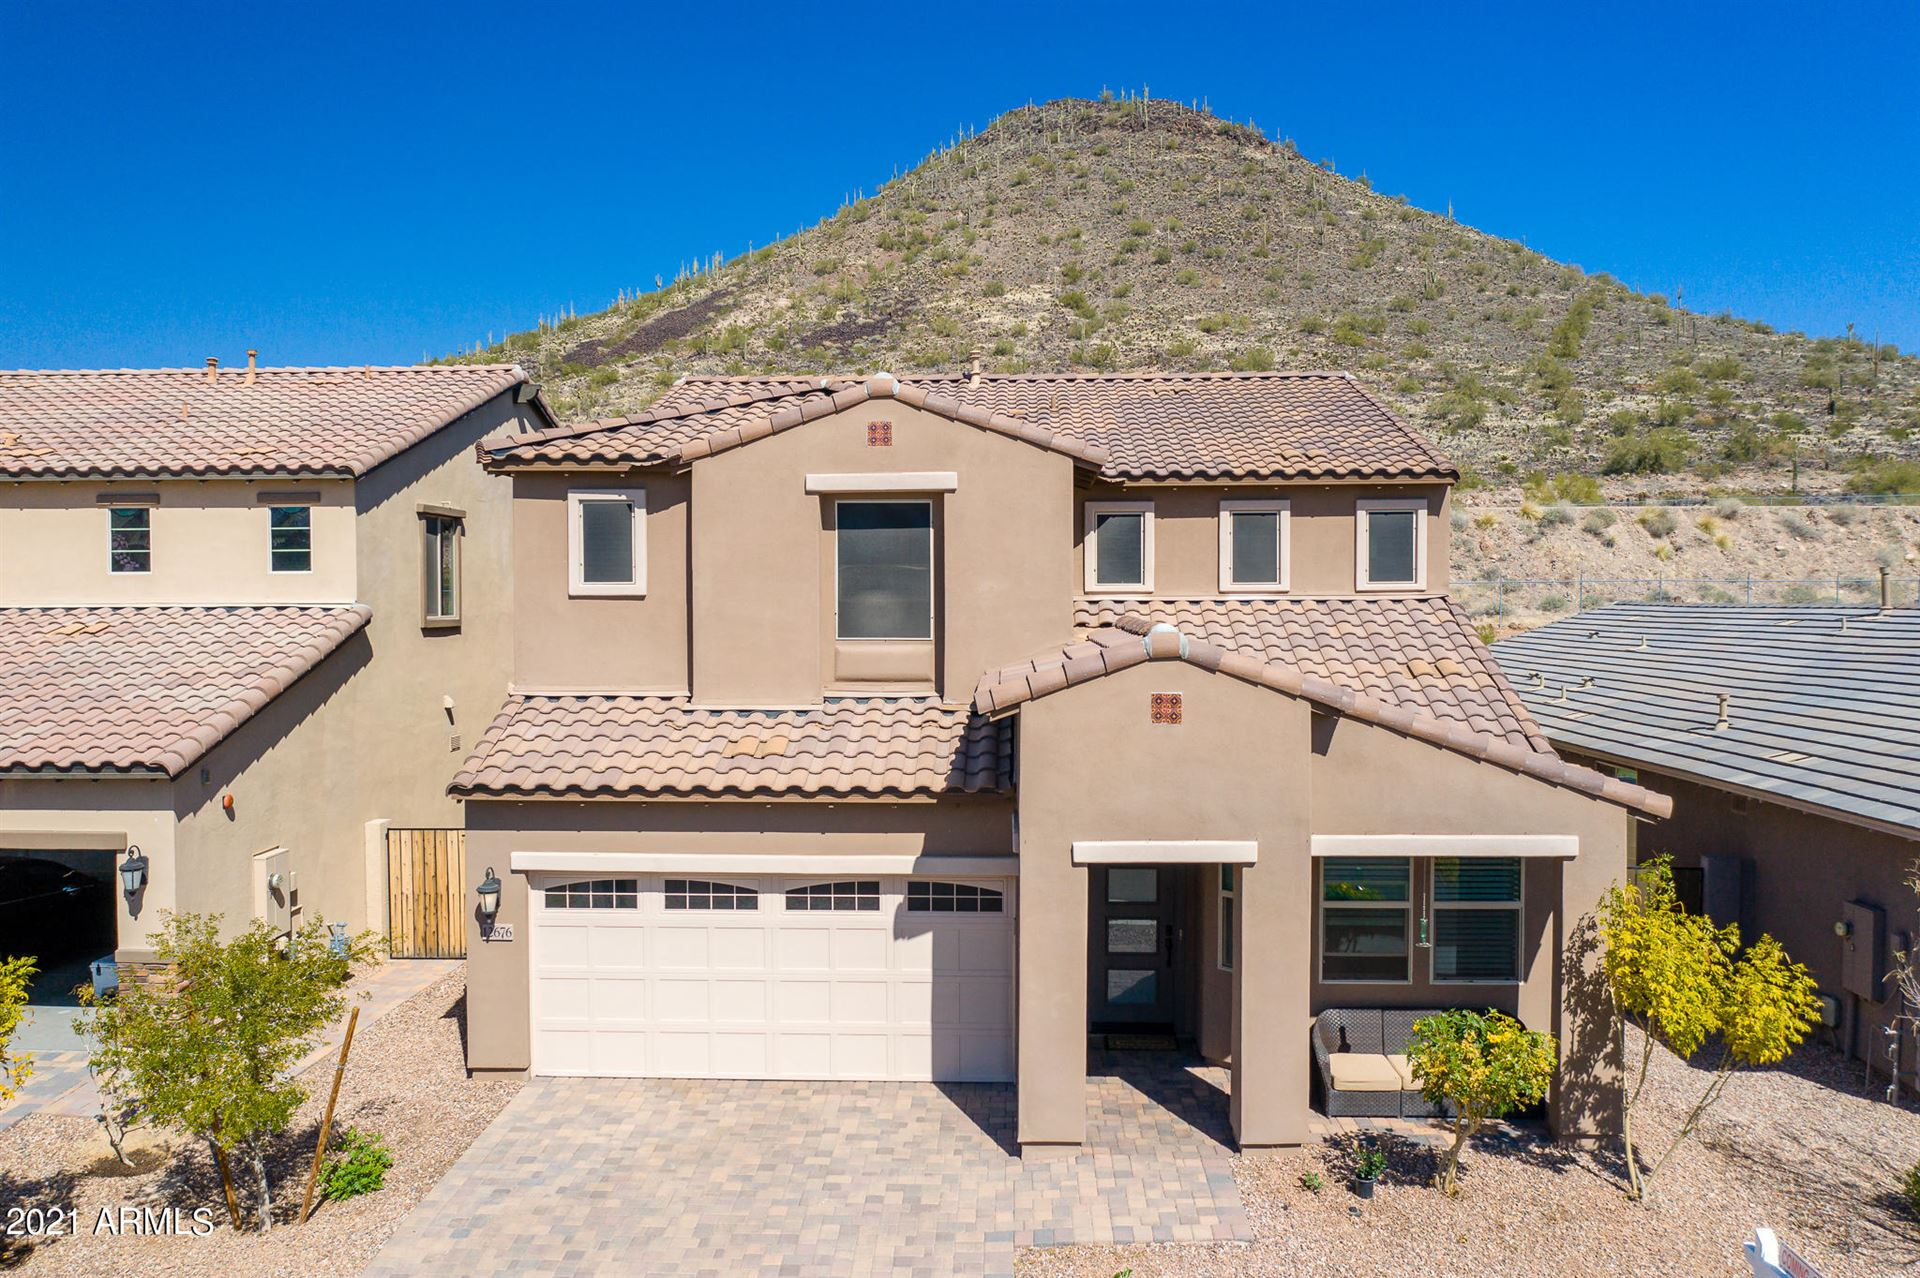 Photo of 12676 W CARAVEO Place, Peoria, AZ 85383 (MLS # 6198276)